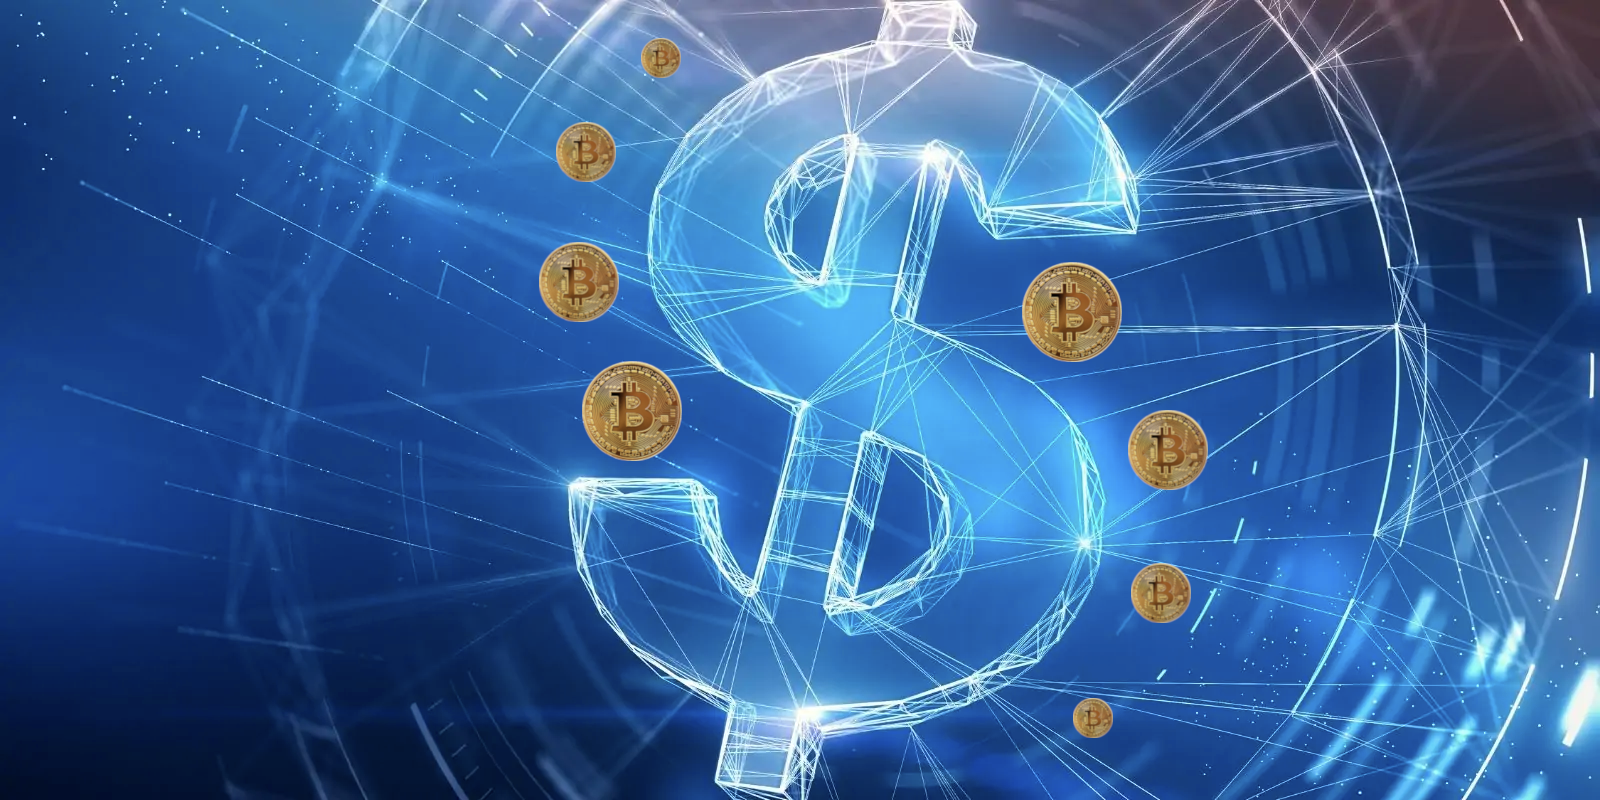 Digital Dollar Technology is coming 'fast and furious.'